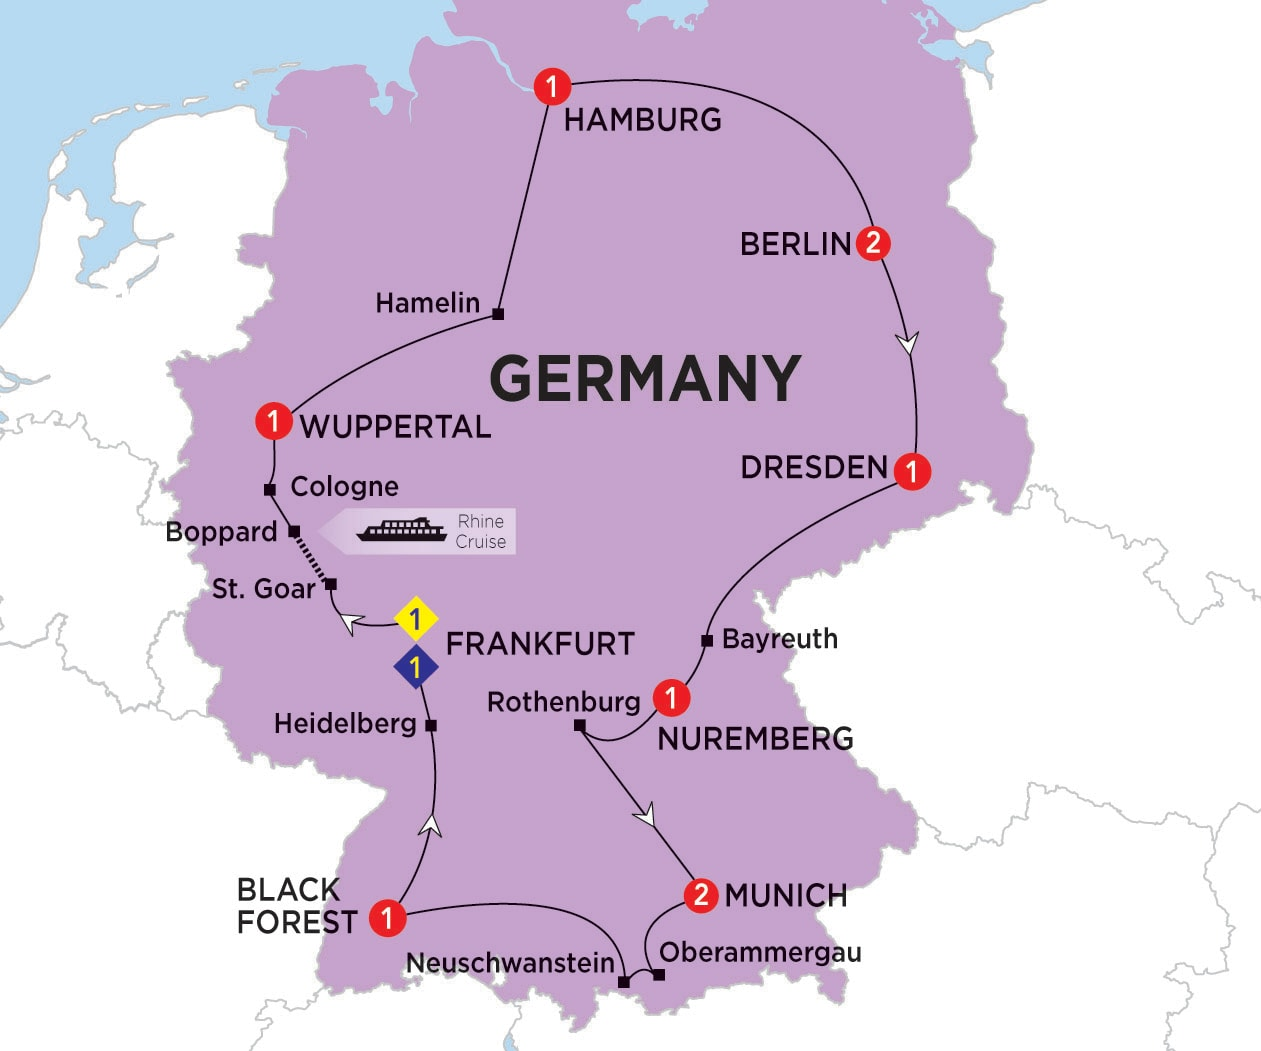 Itinerary map of Highlights of Germany summer 2017